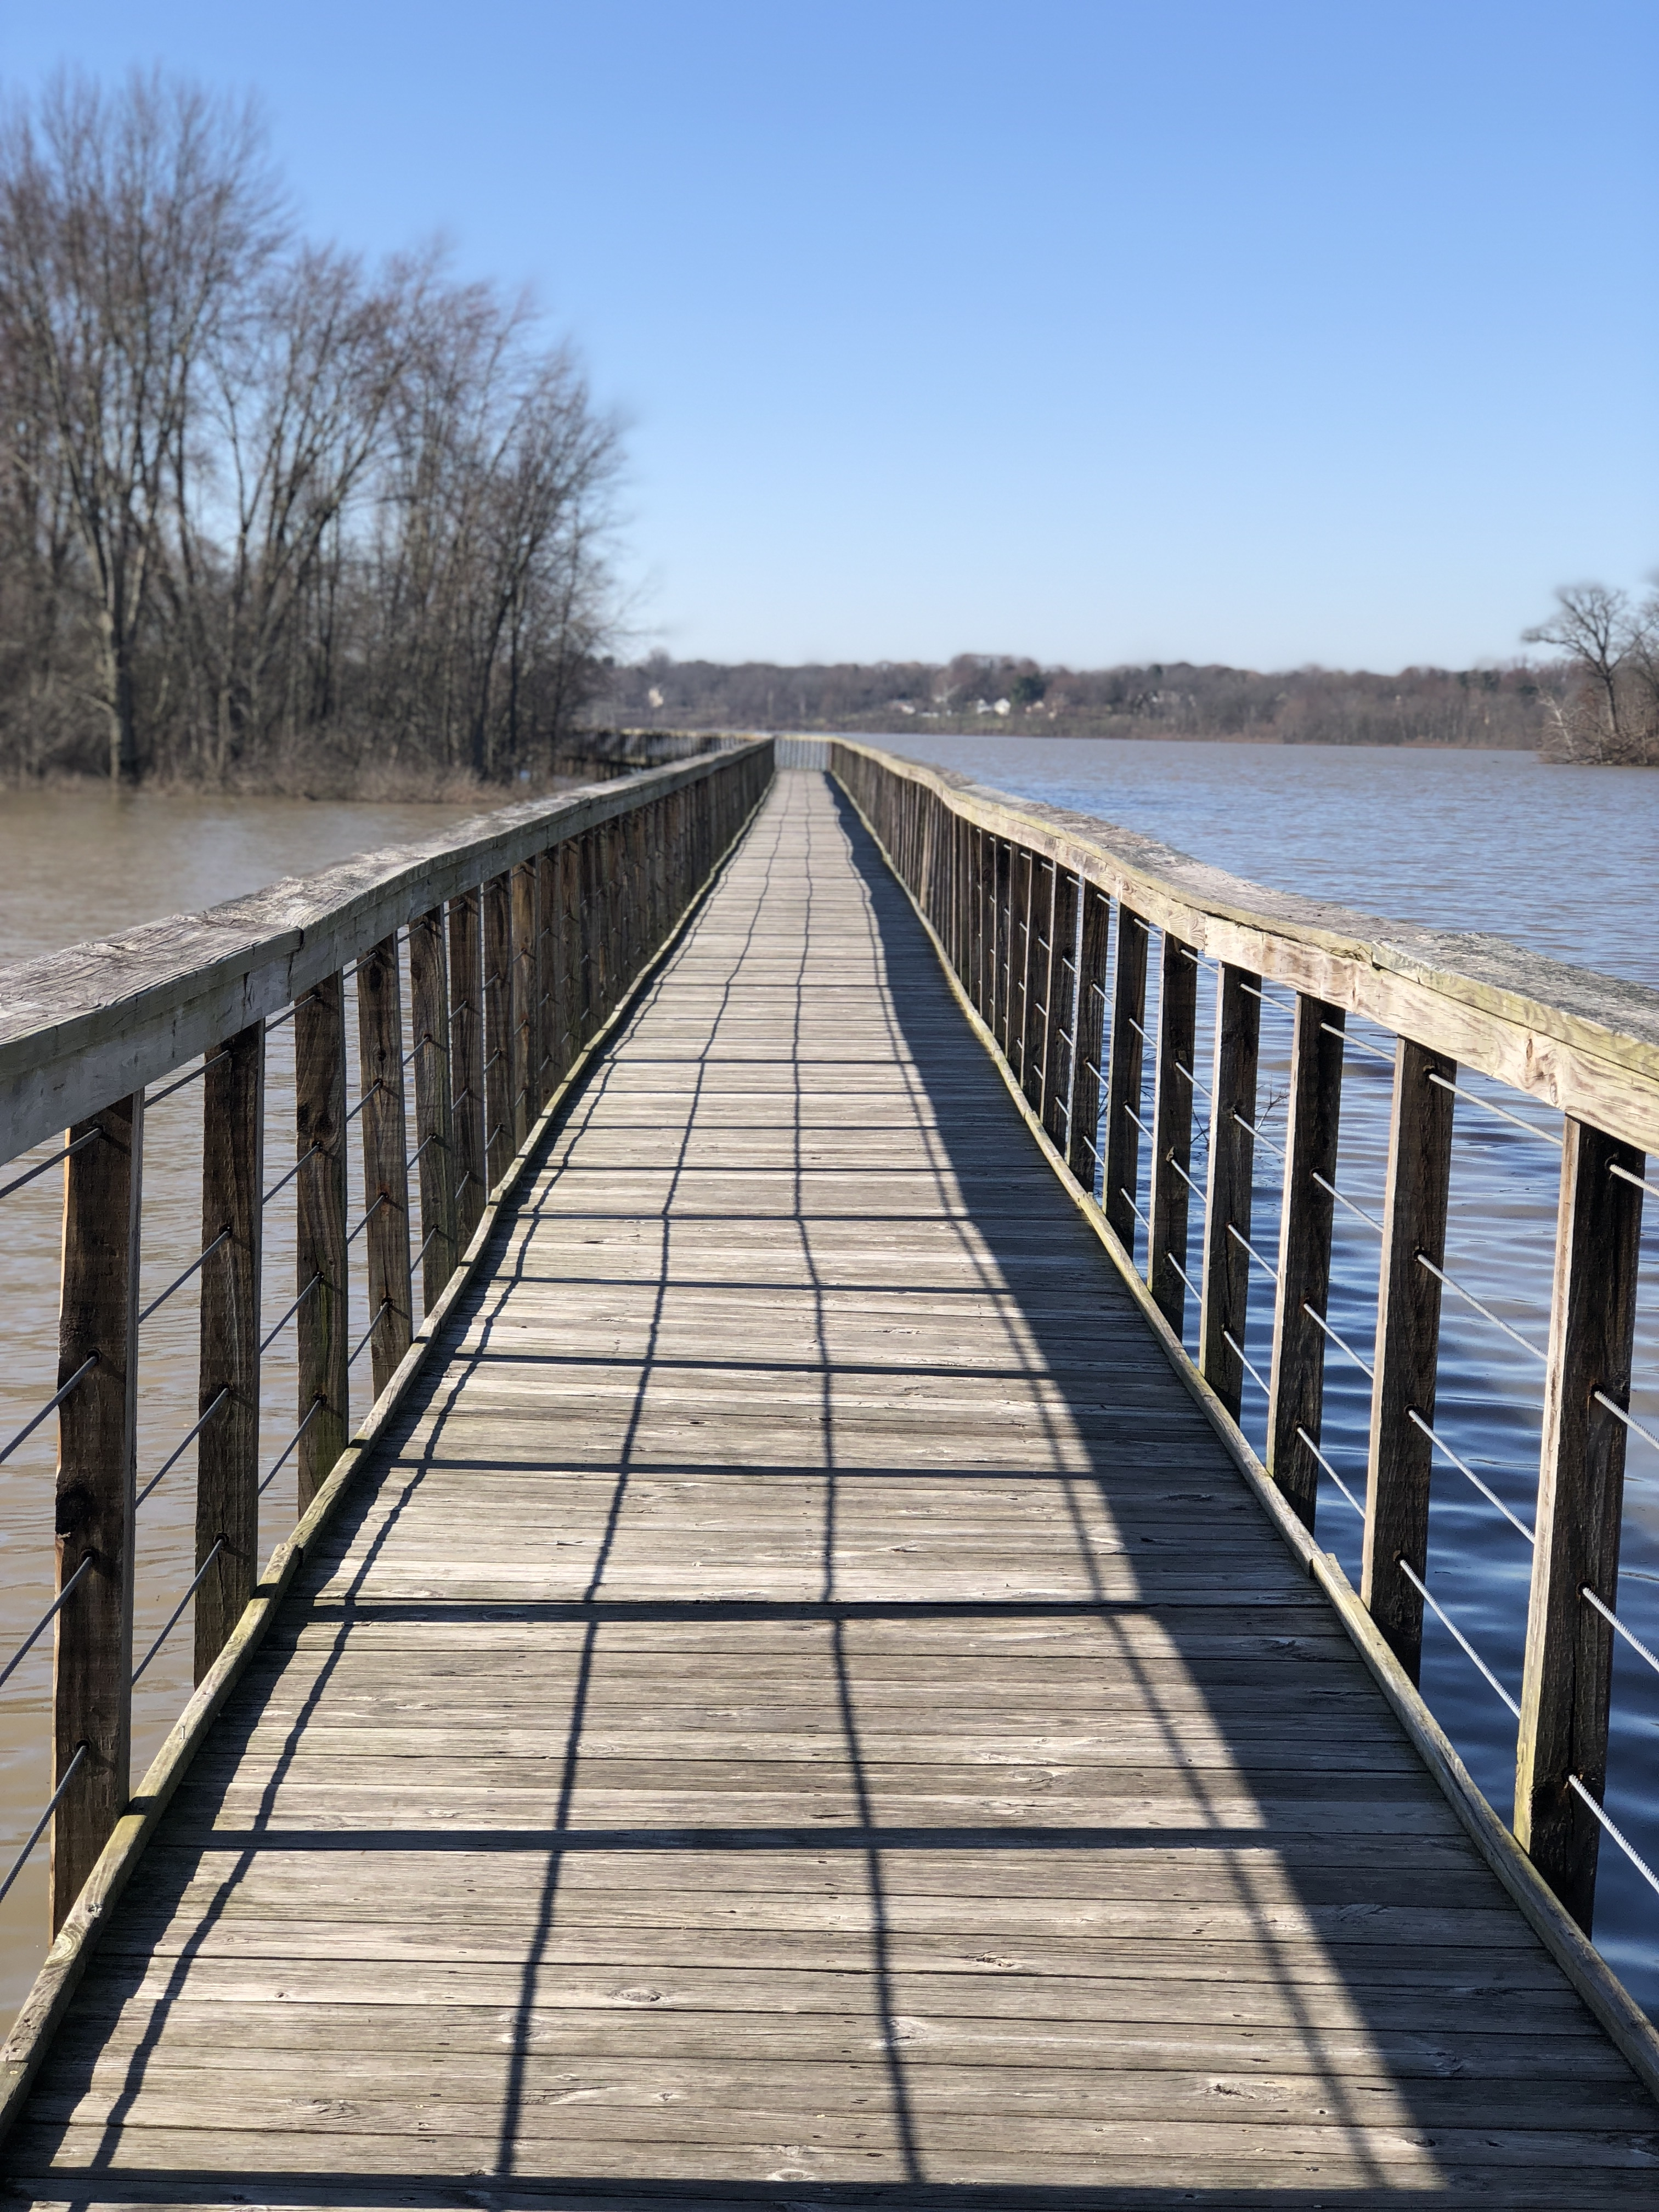 The Hoover Mudflats Boardwalk